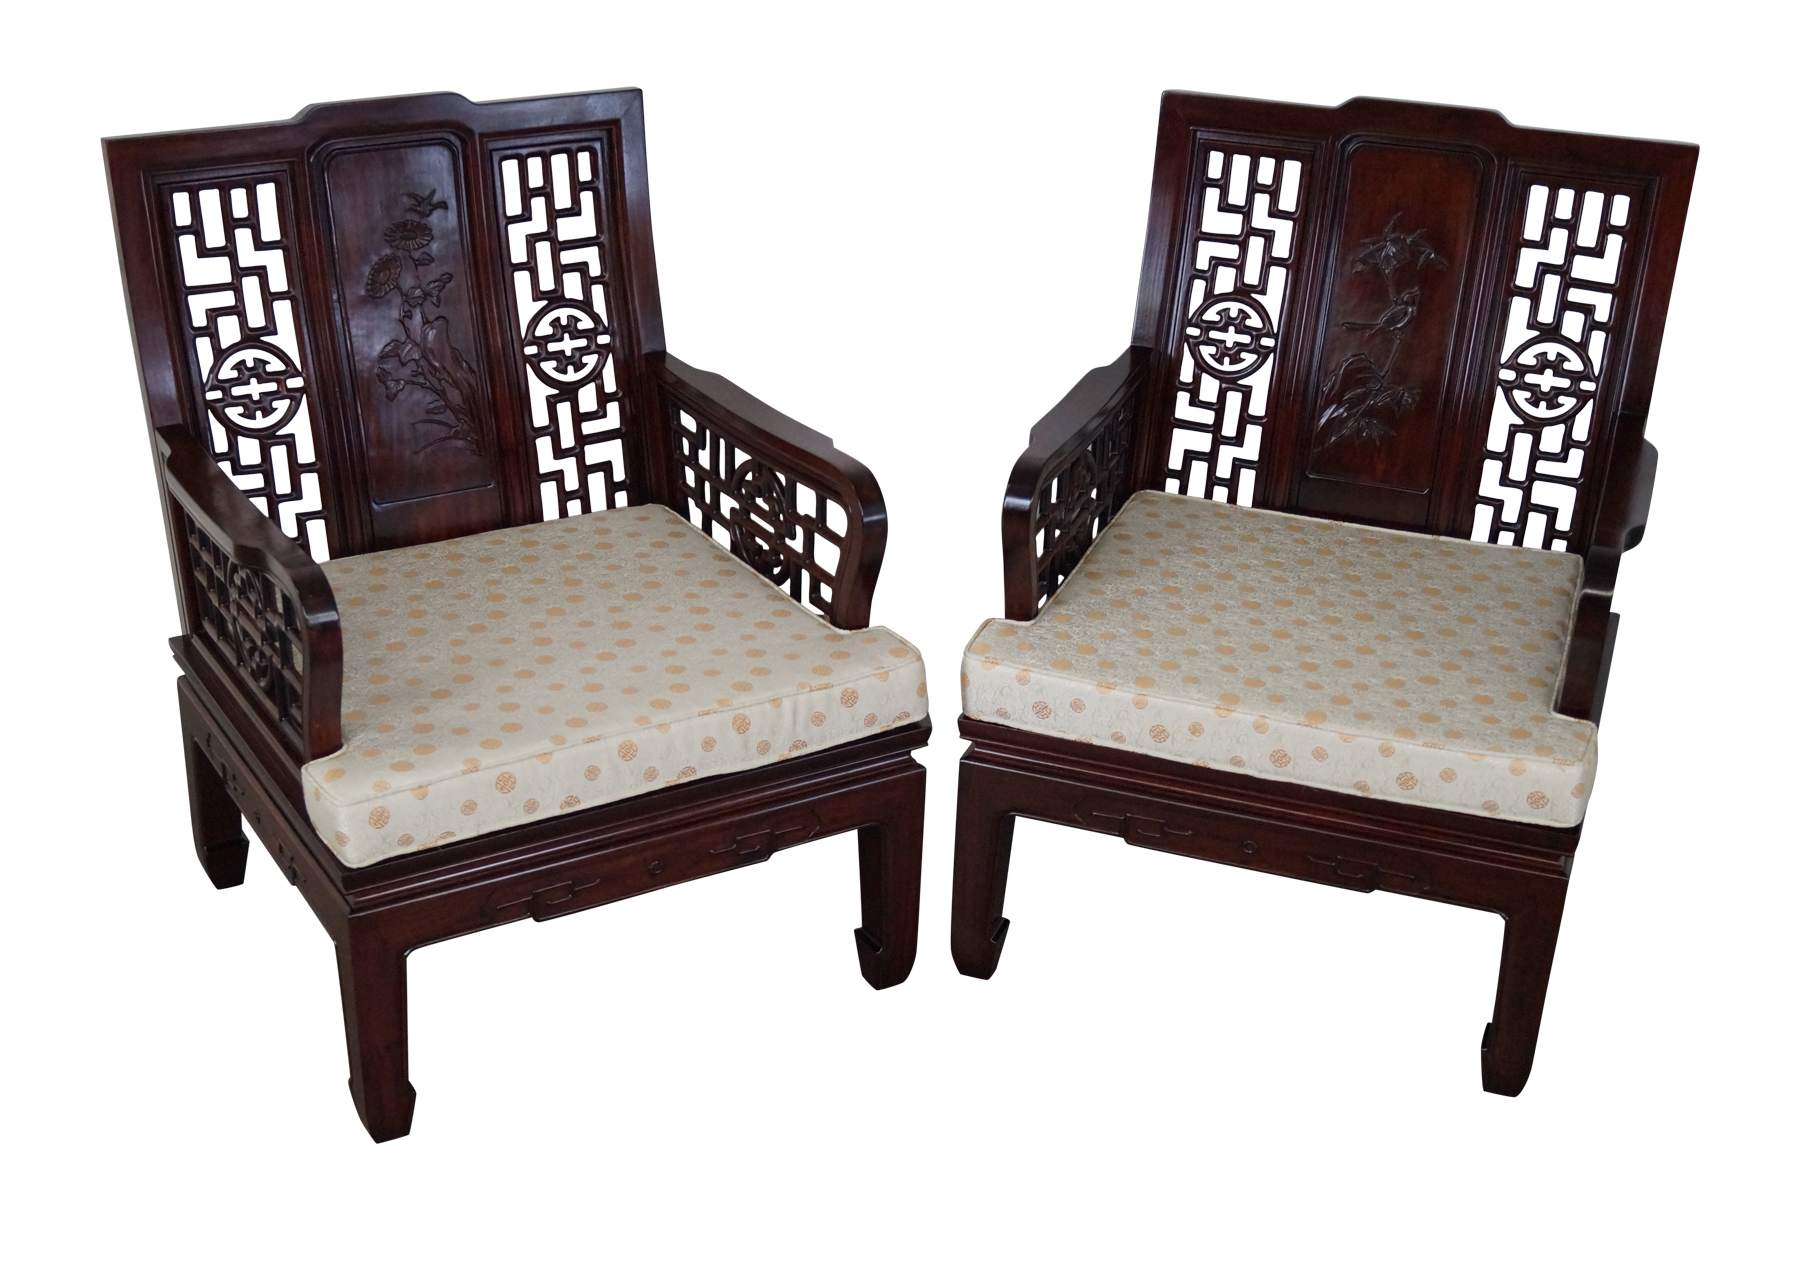 Chinese Rosewood Lounge Chairs Pair On Chairish Com Chair